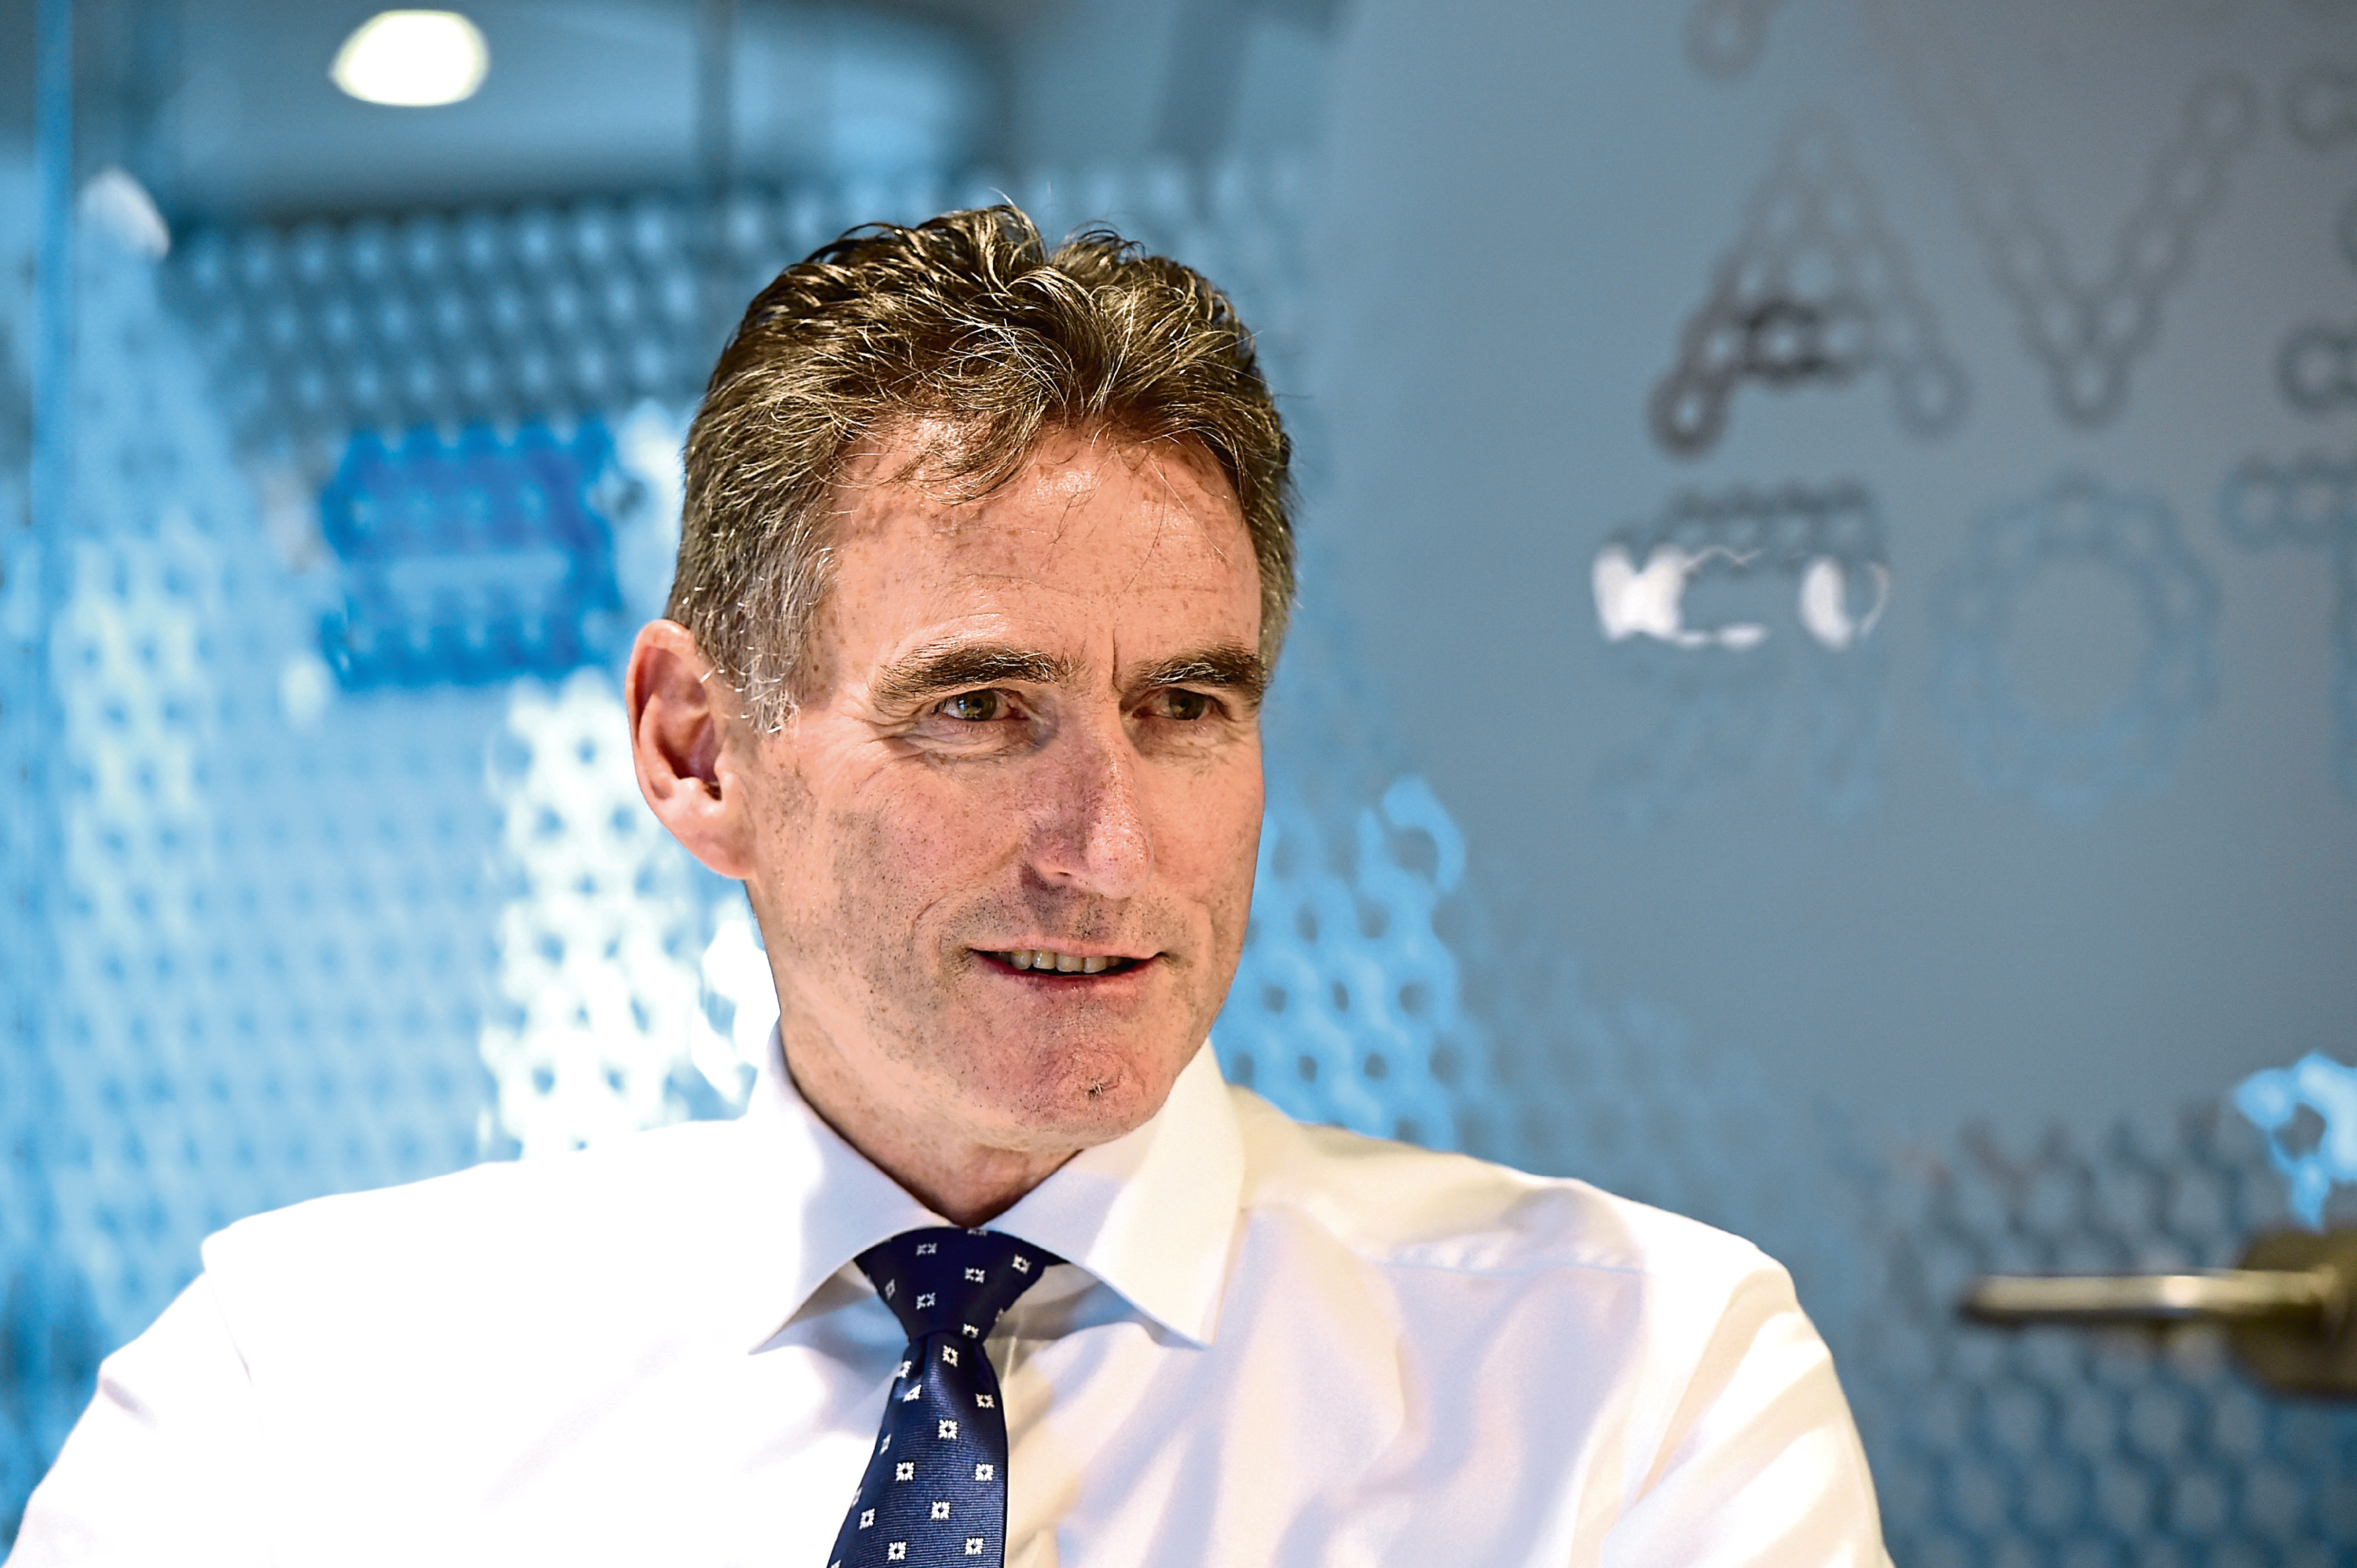 Royal Bank of Scotland Chief Executive, Ross McEwan, at The Hub, Aberdeen Energy Park.    Picture by KEVIN EMSLIE